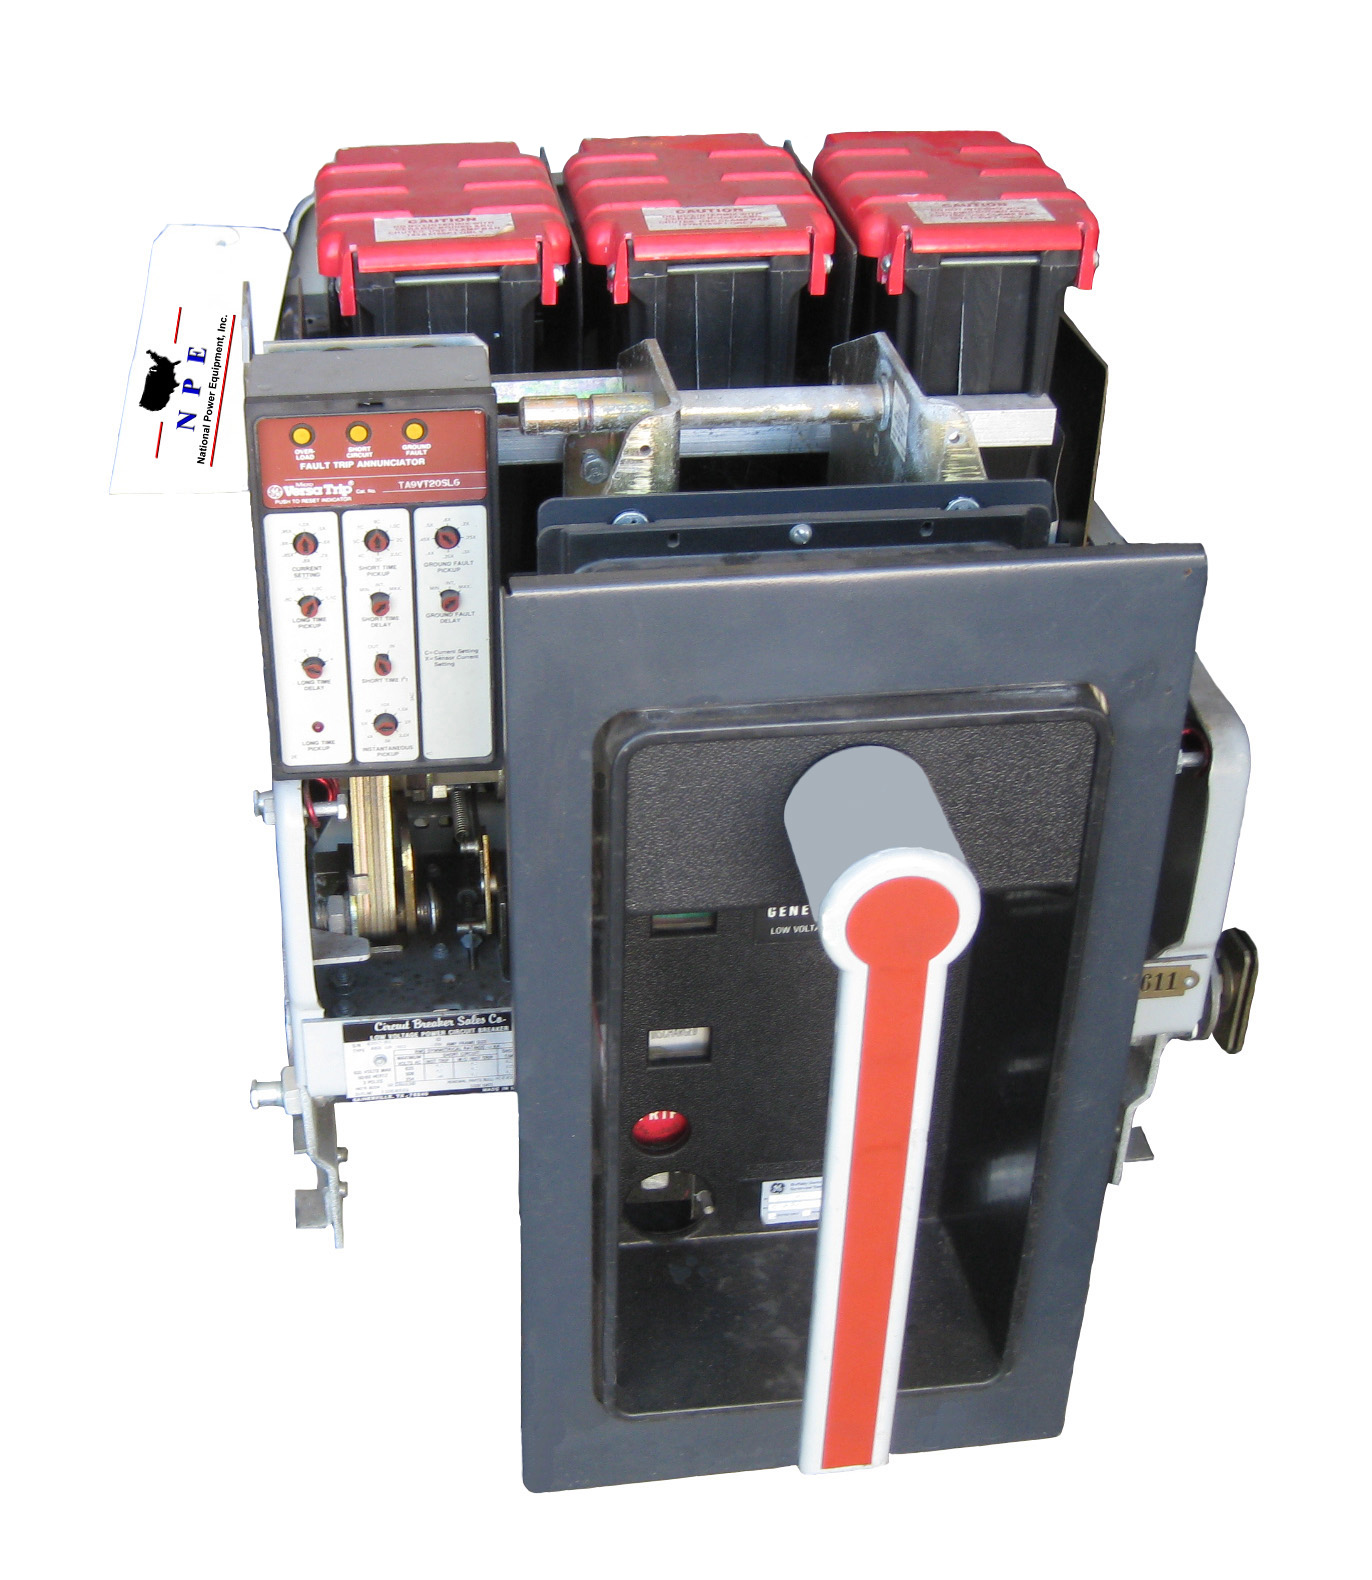 Image of a General Electric circuit breaker.